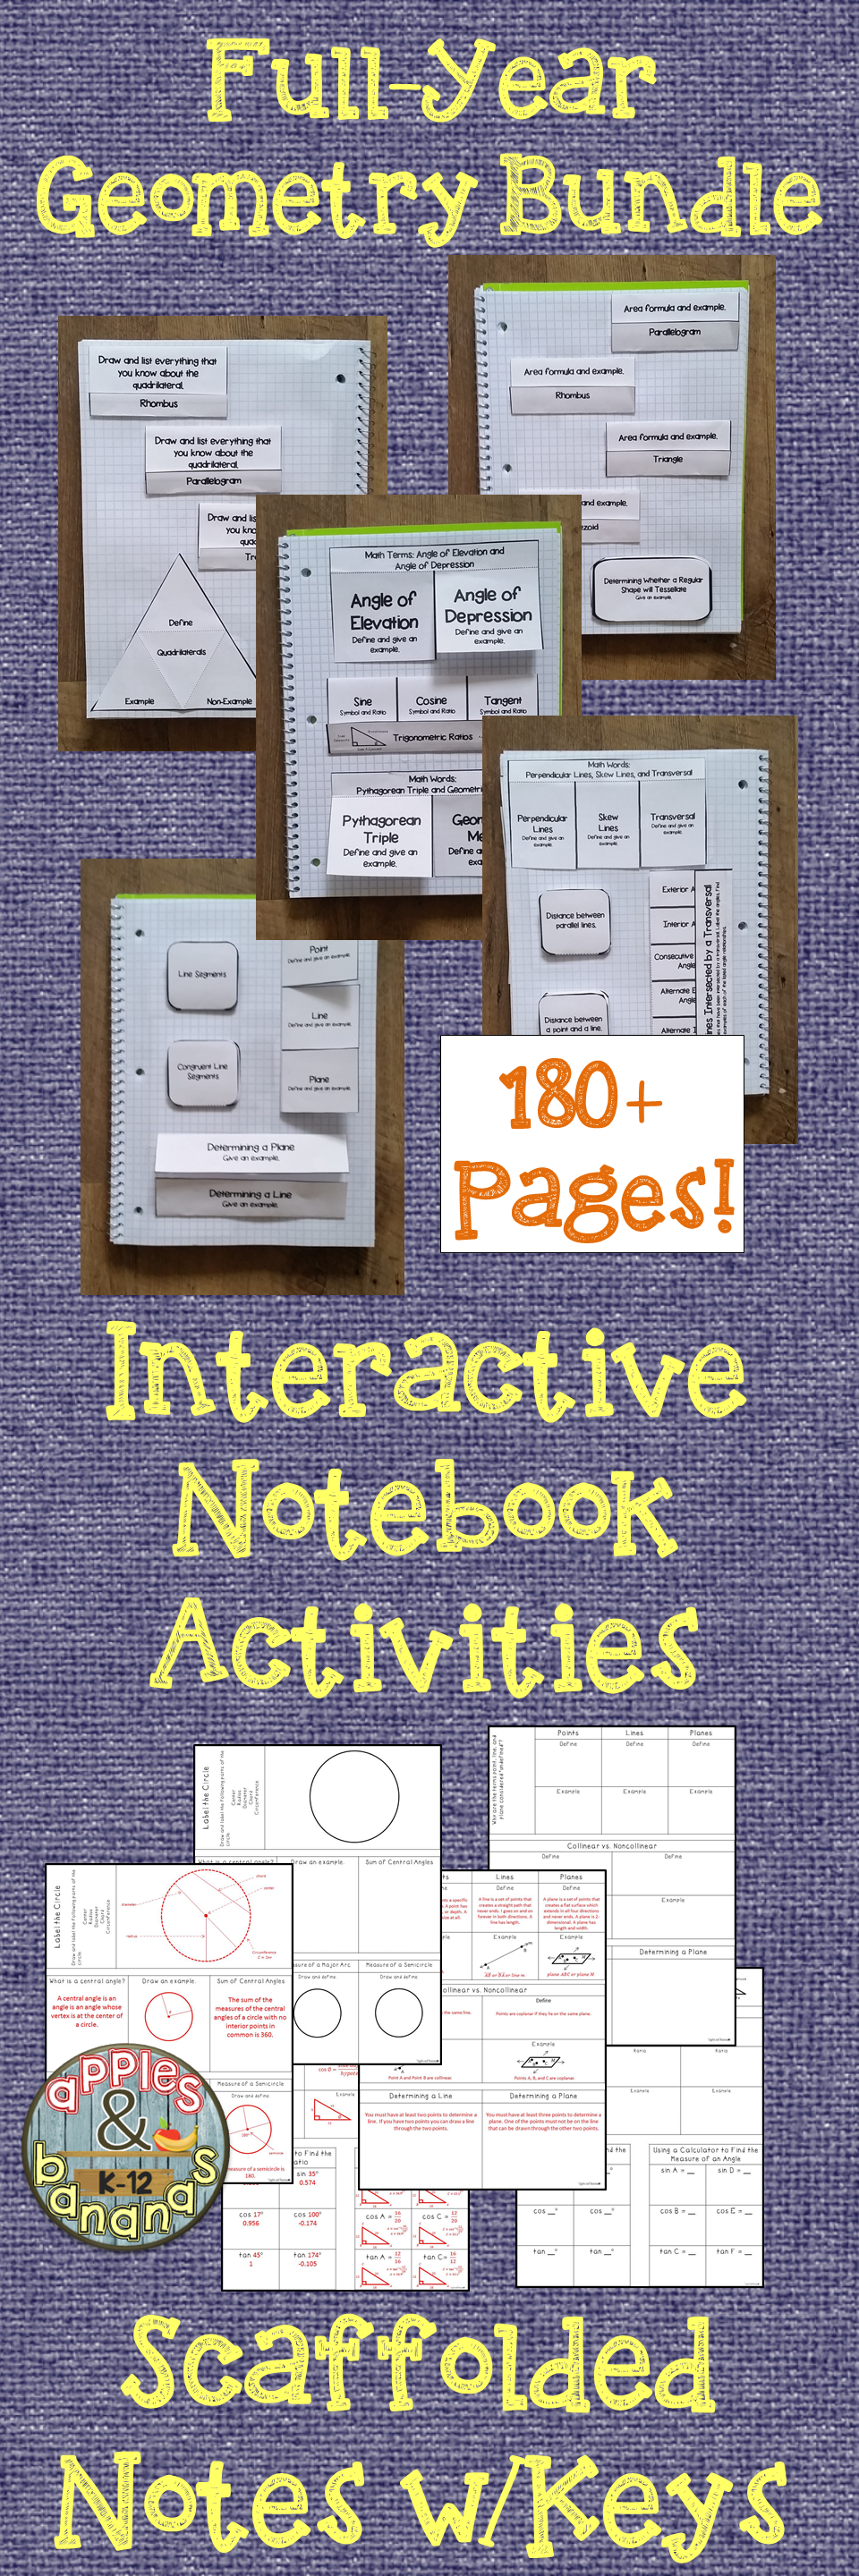 Geometry interactive notebook activities and scaffolded notes bundle full year geometry bundle containing 180 pages of interactive notebook activities and scaffolded notes fandeluxe Image collections